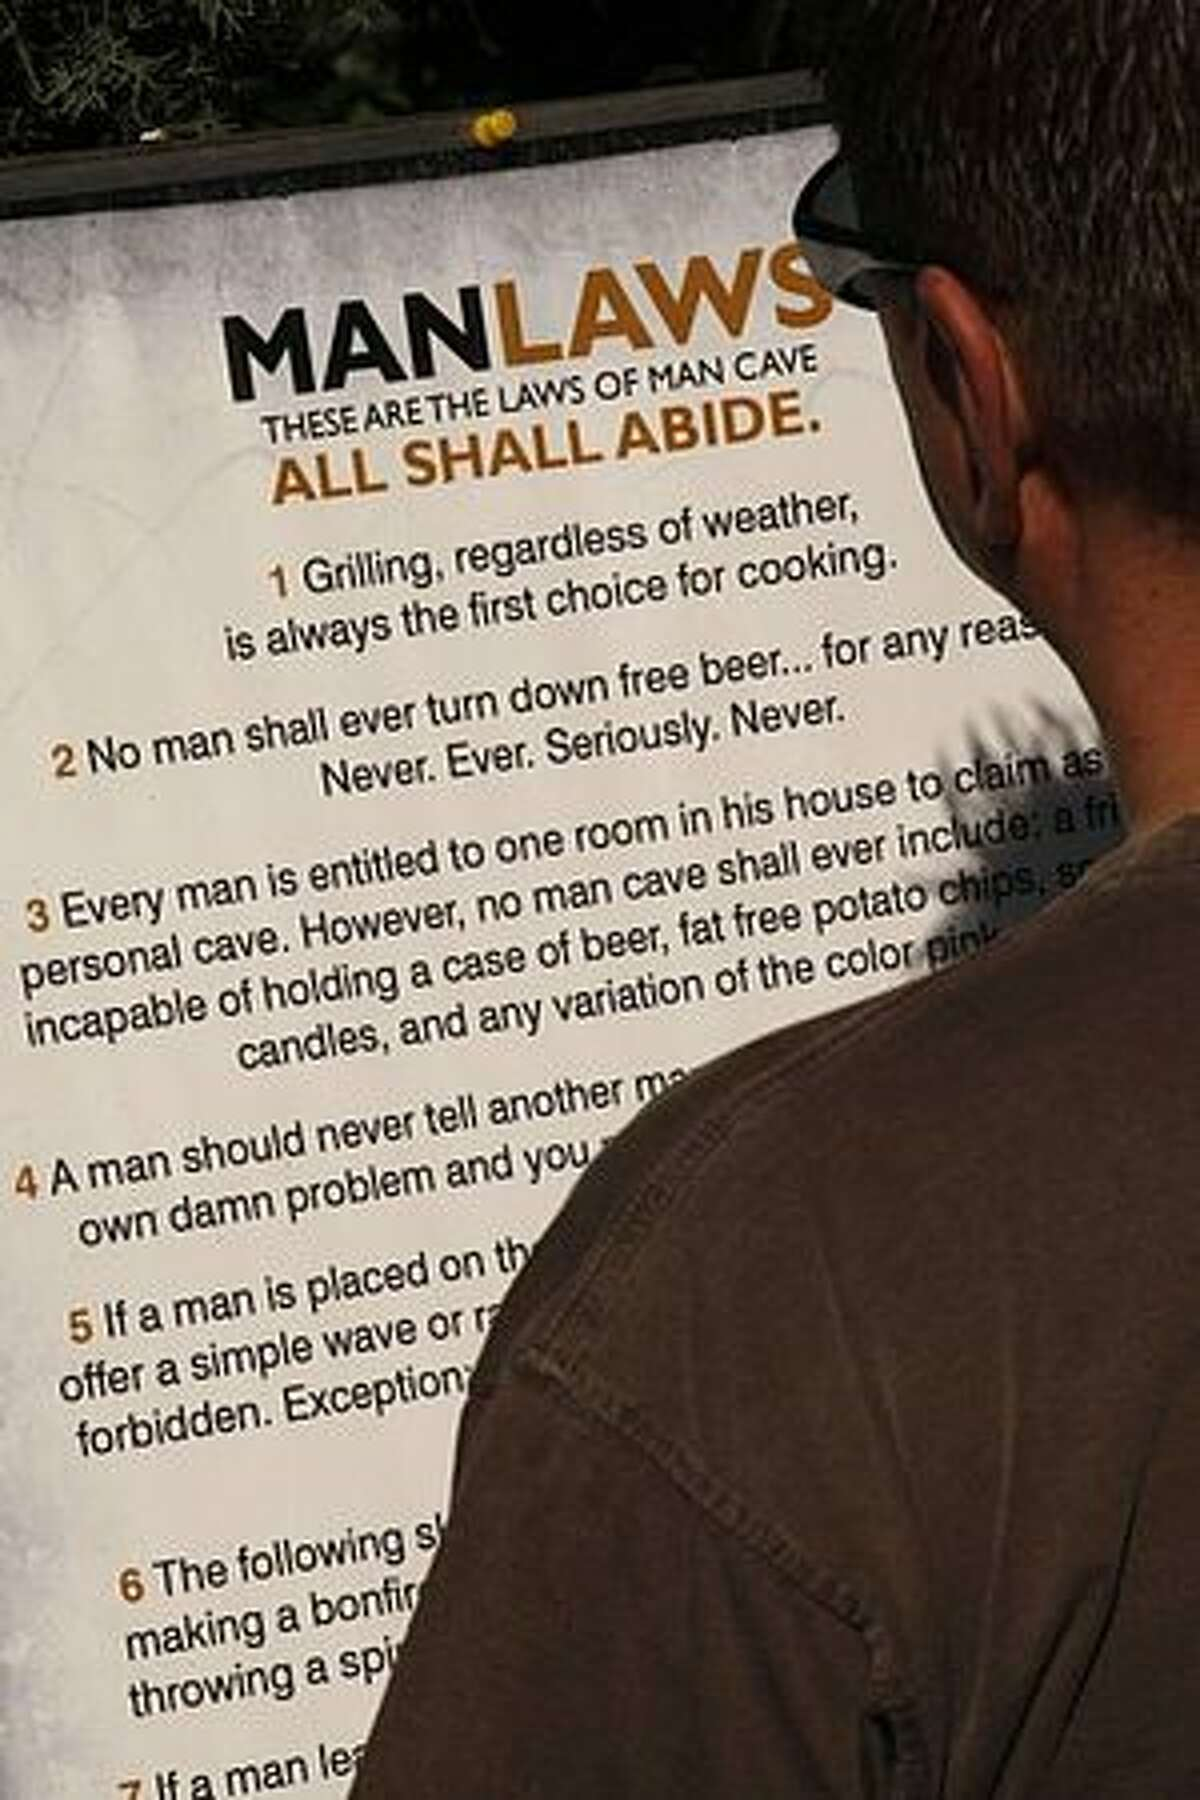 Man Cave, a company that lets men be men, has codified manly behavior in its Laws of Man Cave.